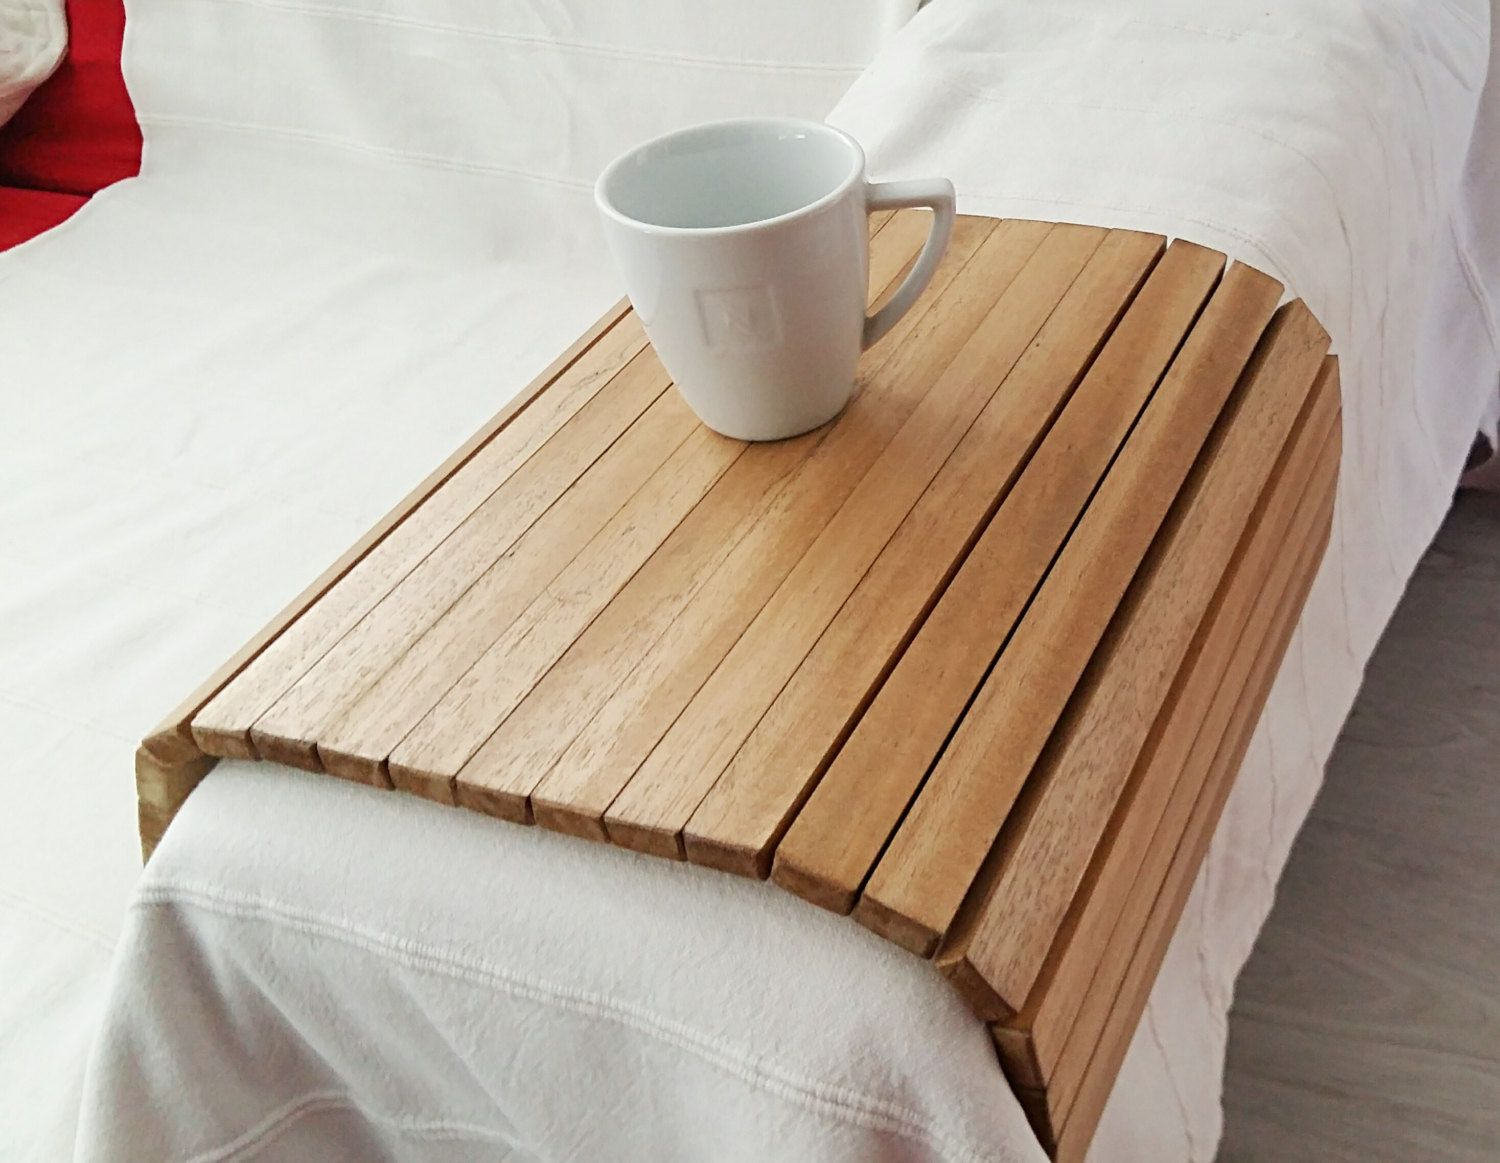 Sofa Tray Wooden Tray Flexible Chair Tray Wooden TV By Tossart